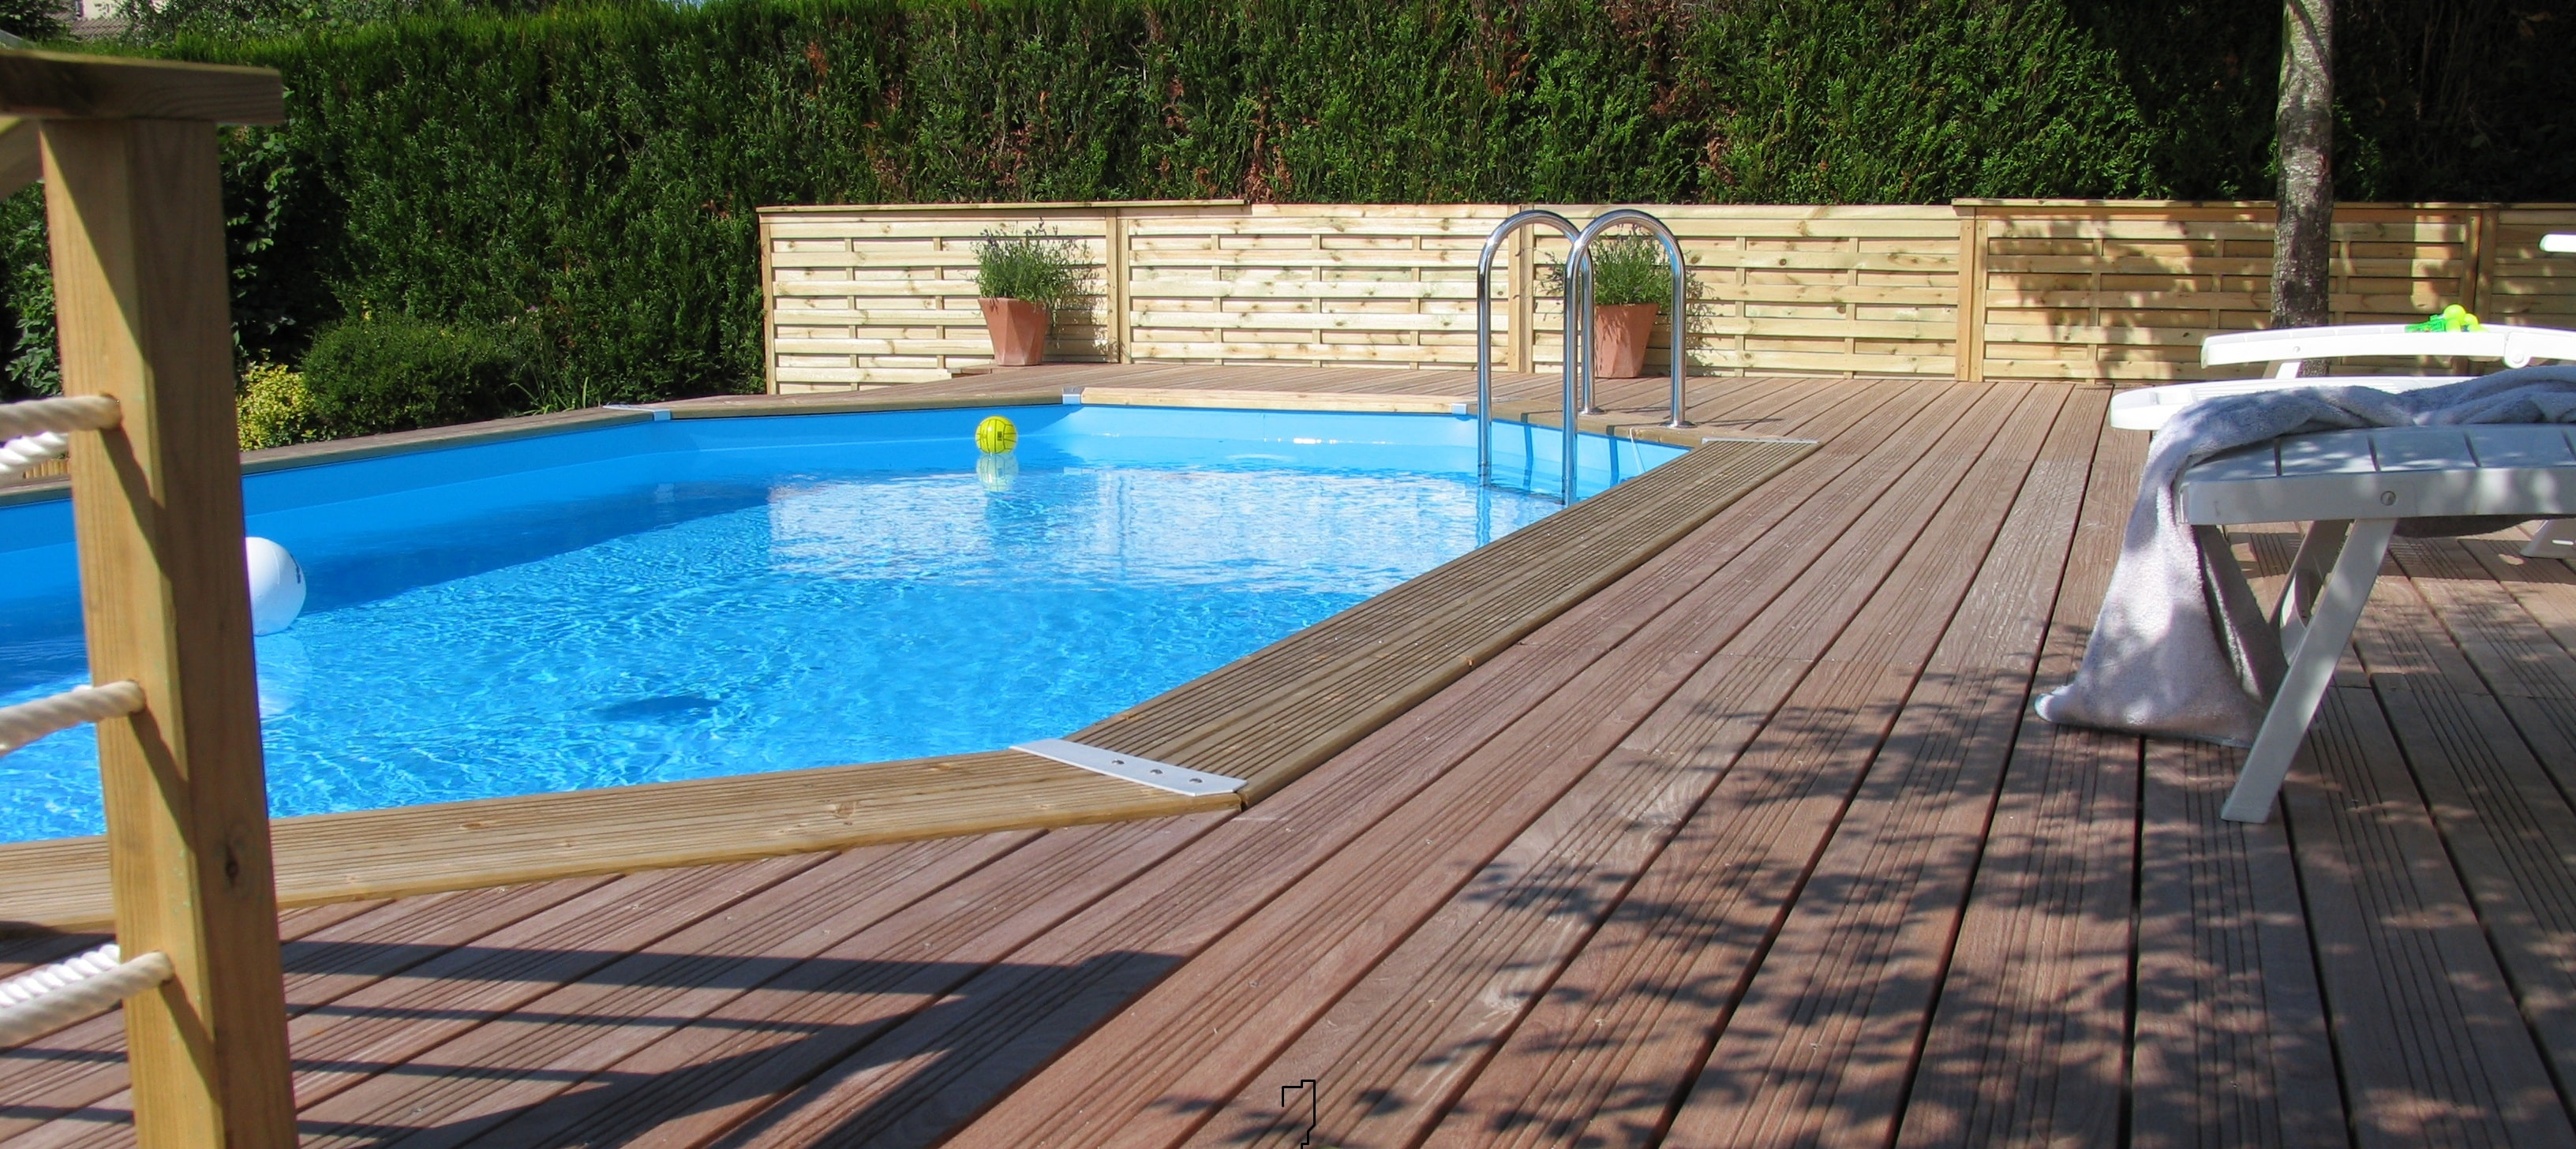 Piscine en bois comment l 39 installer blog jardin for Piscine a monter